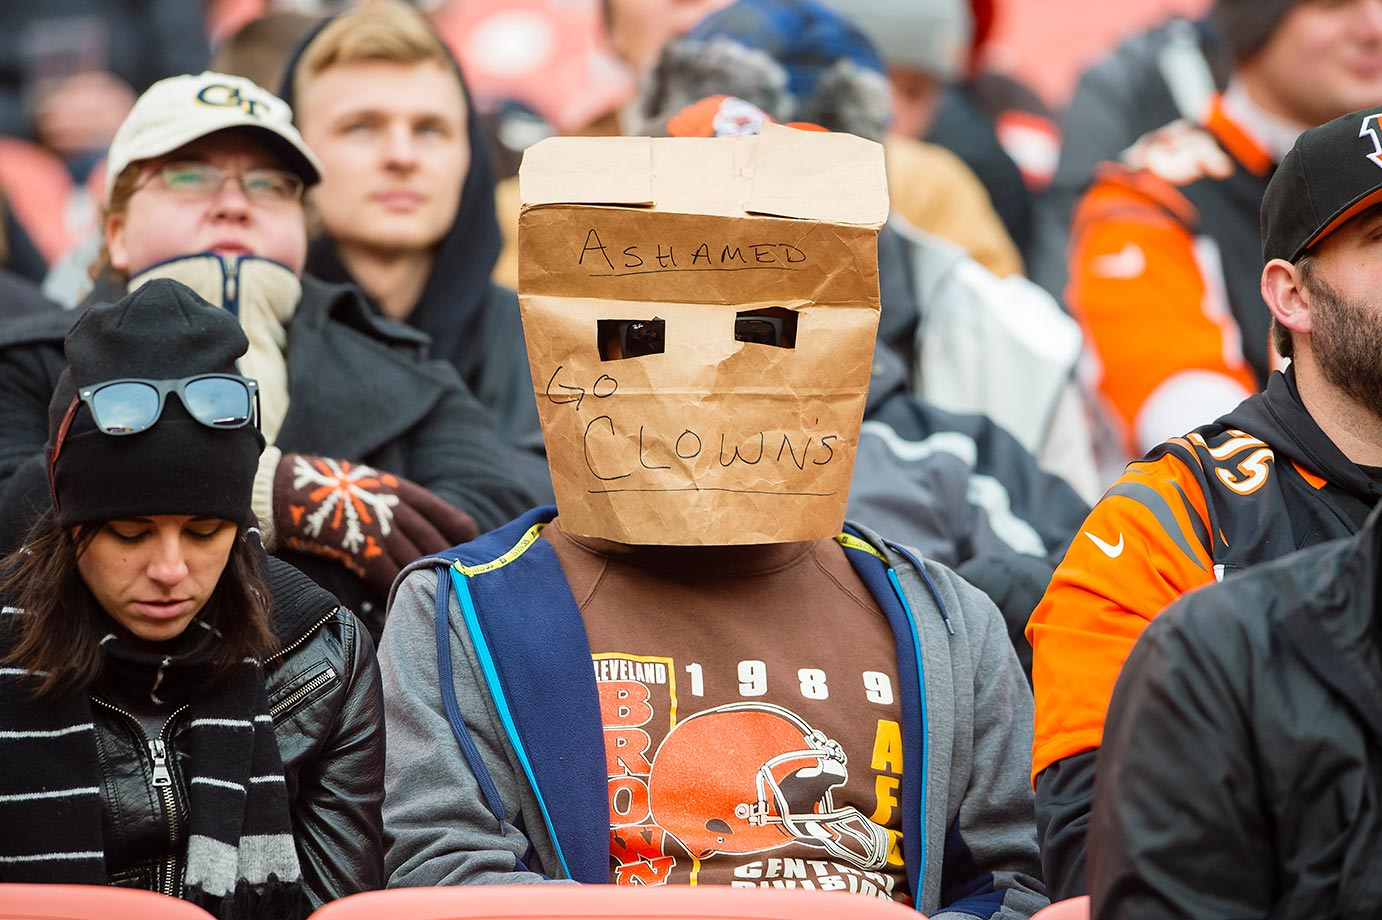 A Cleveland Browns fan expresses disappointment.